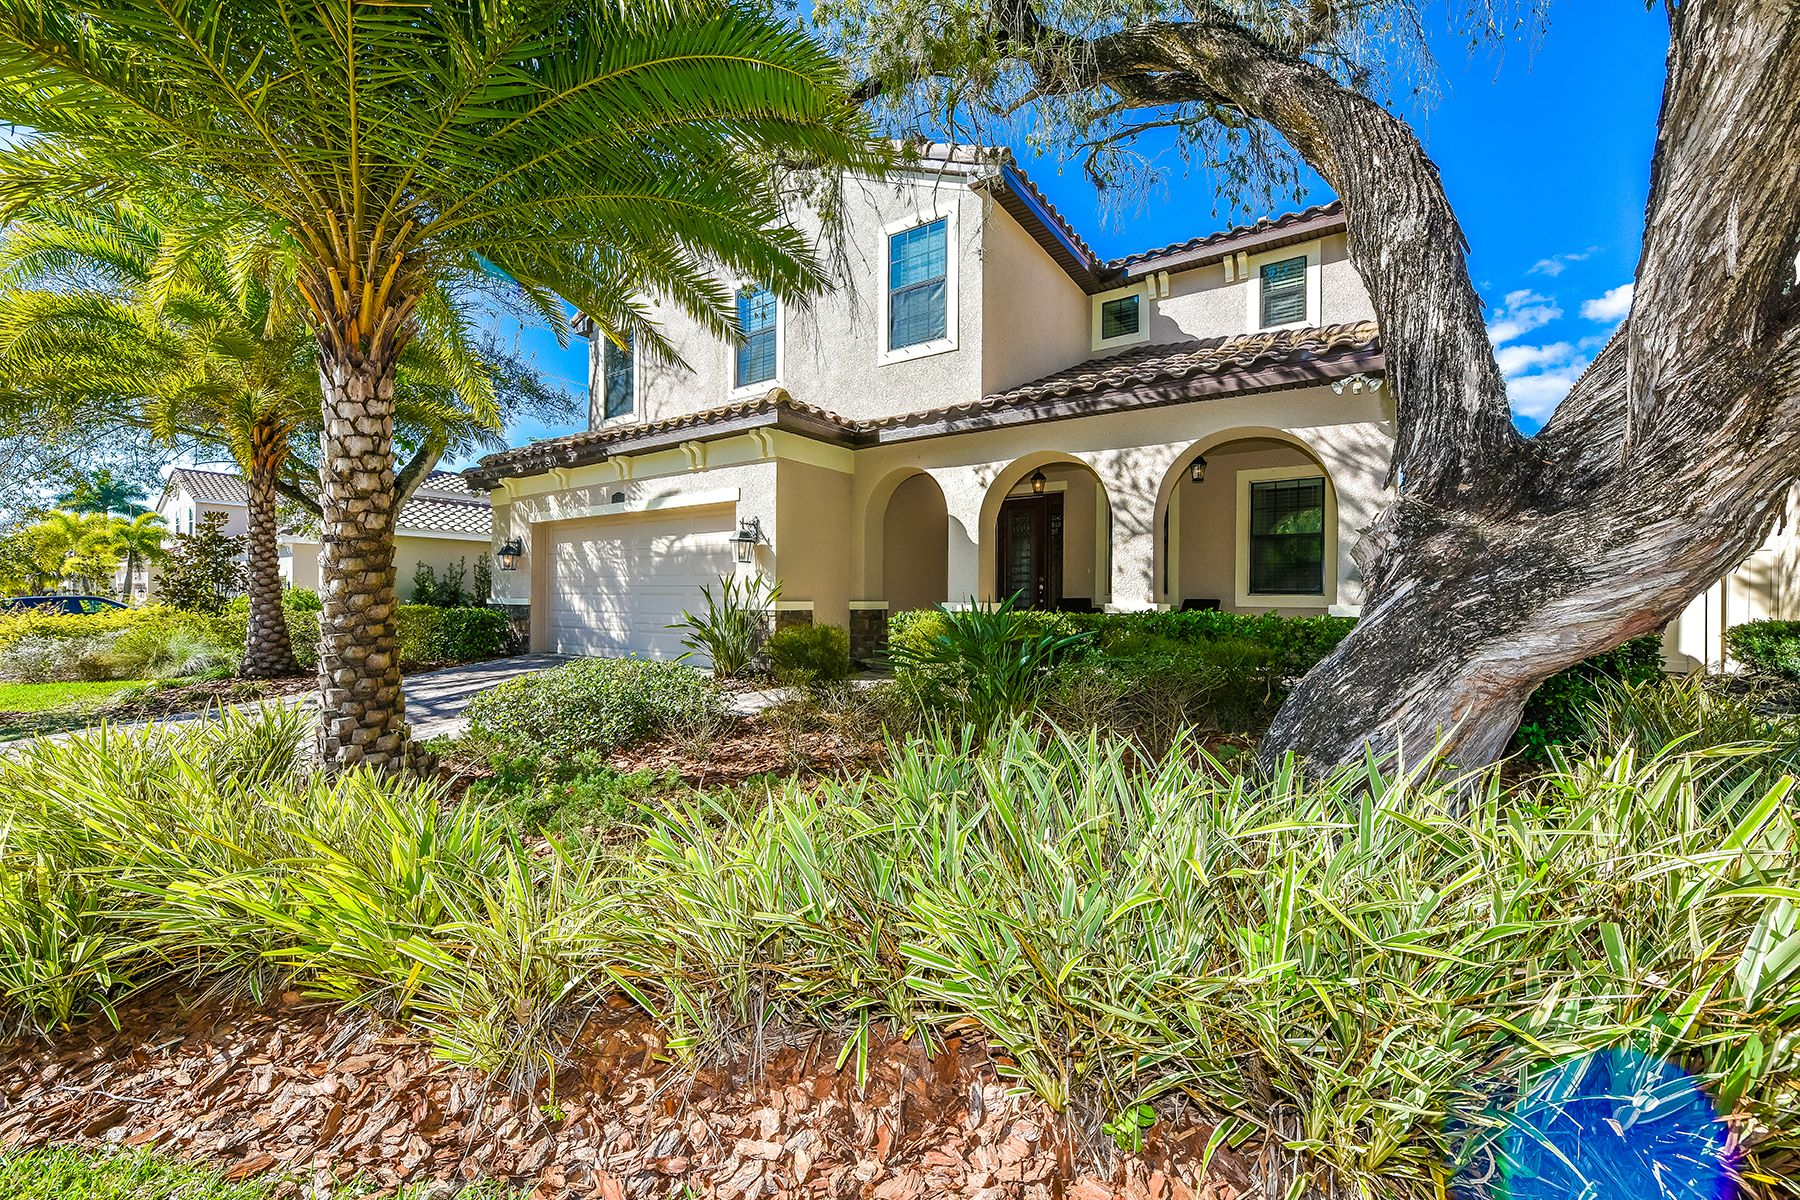 Casa Unifamiliar por un Venta en WEST OF TRAIL 1801 Worrington St Sarasota, Florida, 34231 Estados Unidos